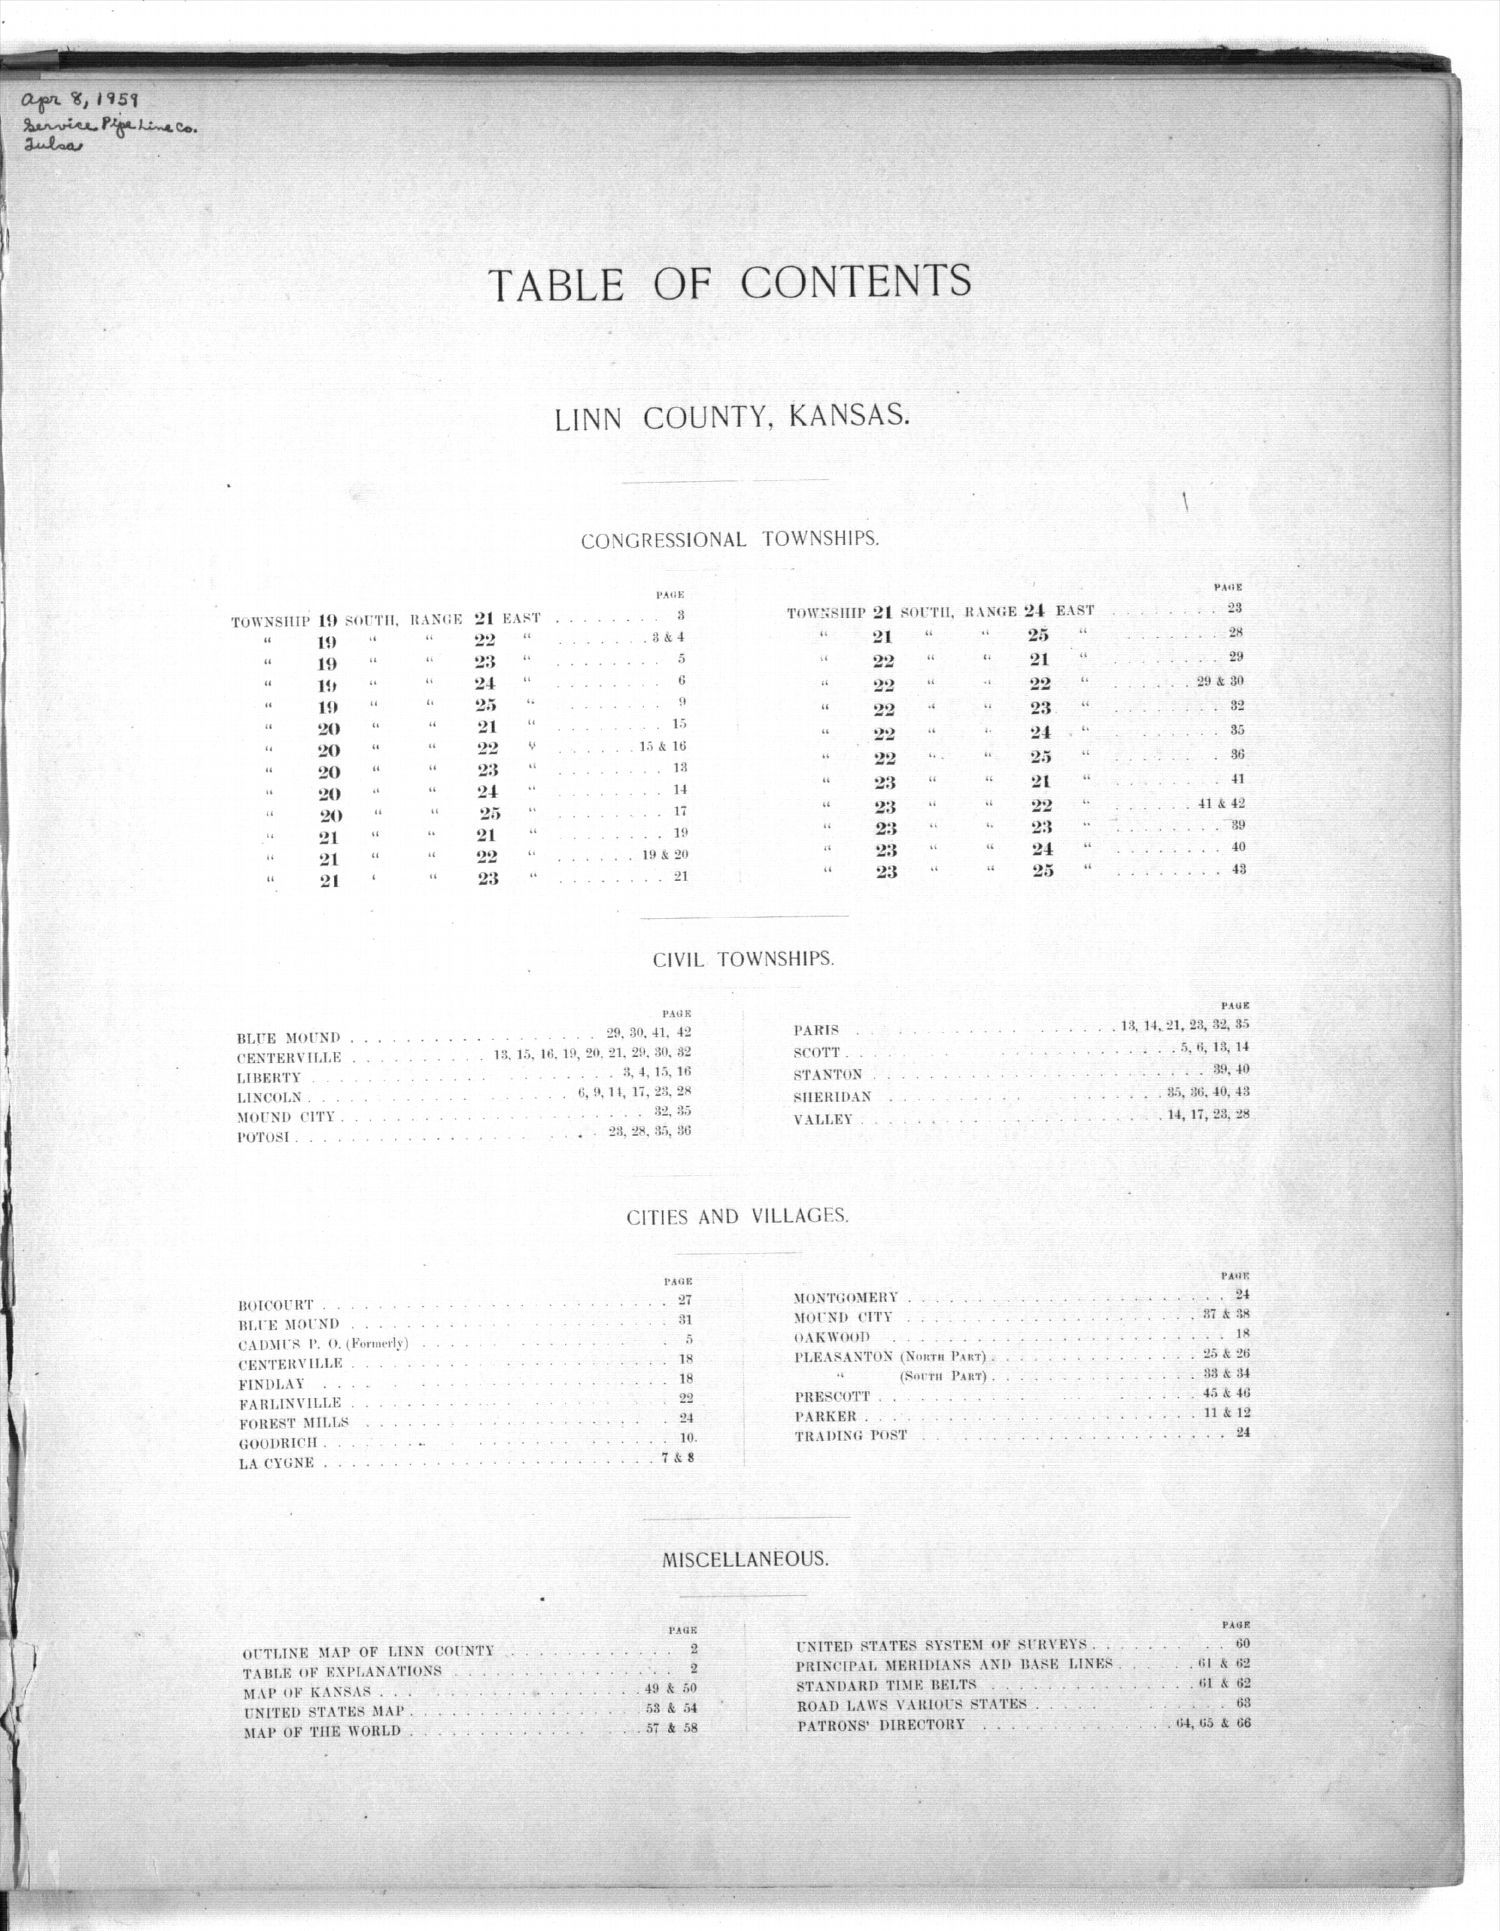 Plat book of Linn County, Kansas - Table of Contents